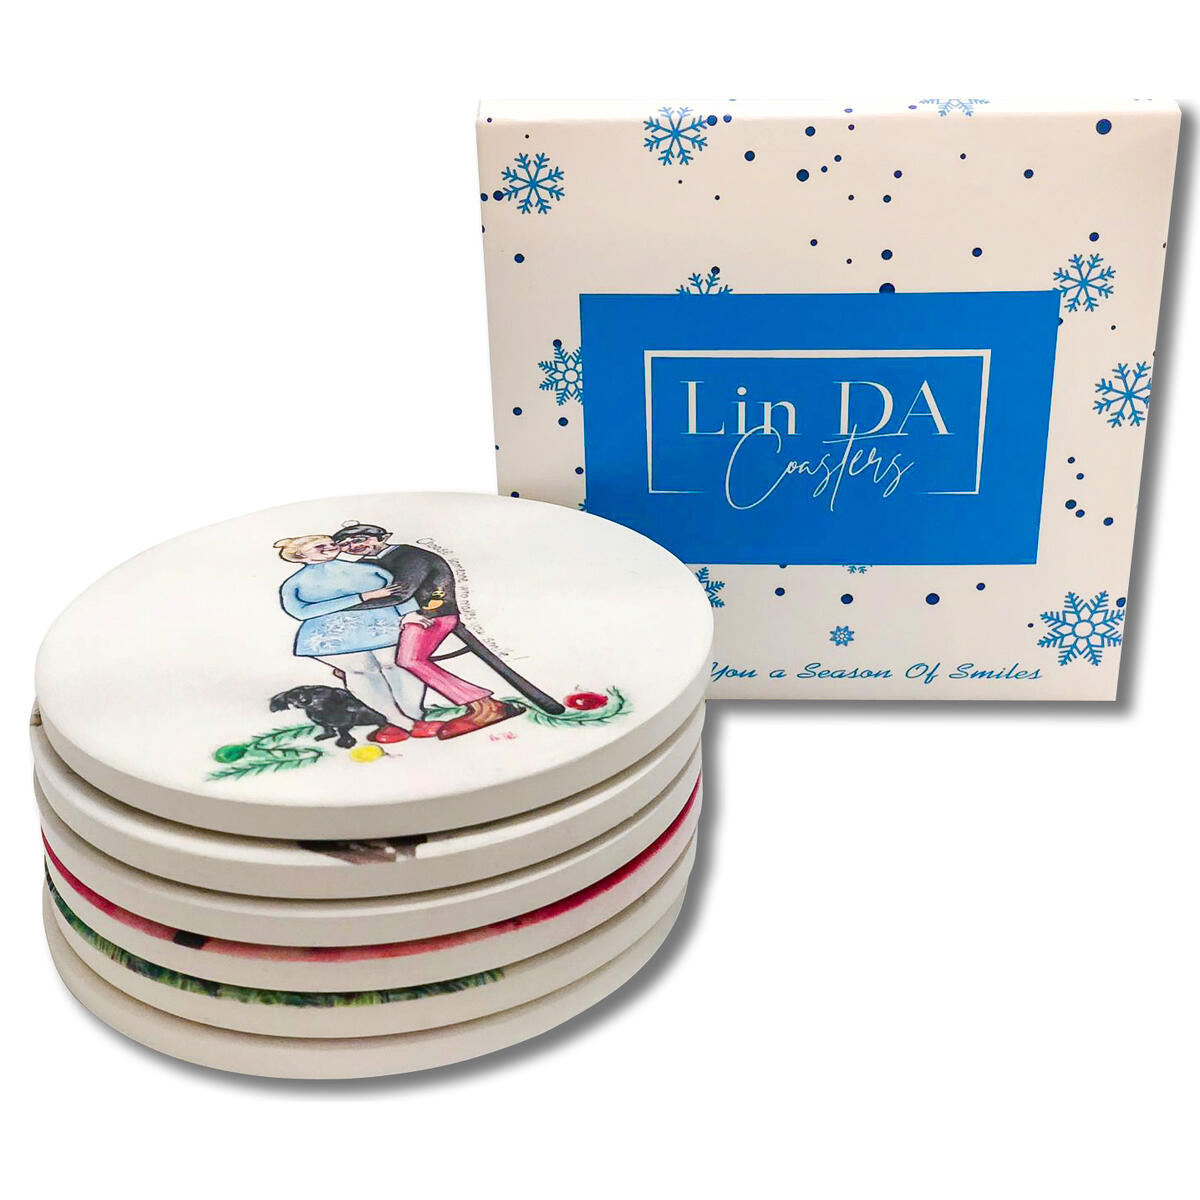 Lin Da Absorbent Ceramic Christmas Coaster Set, Original Watercolor Design, Unique Packaging, Best Gift Idea, Funny and Positive, 6 Functional Round Coasters